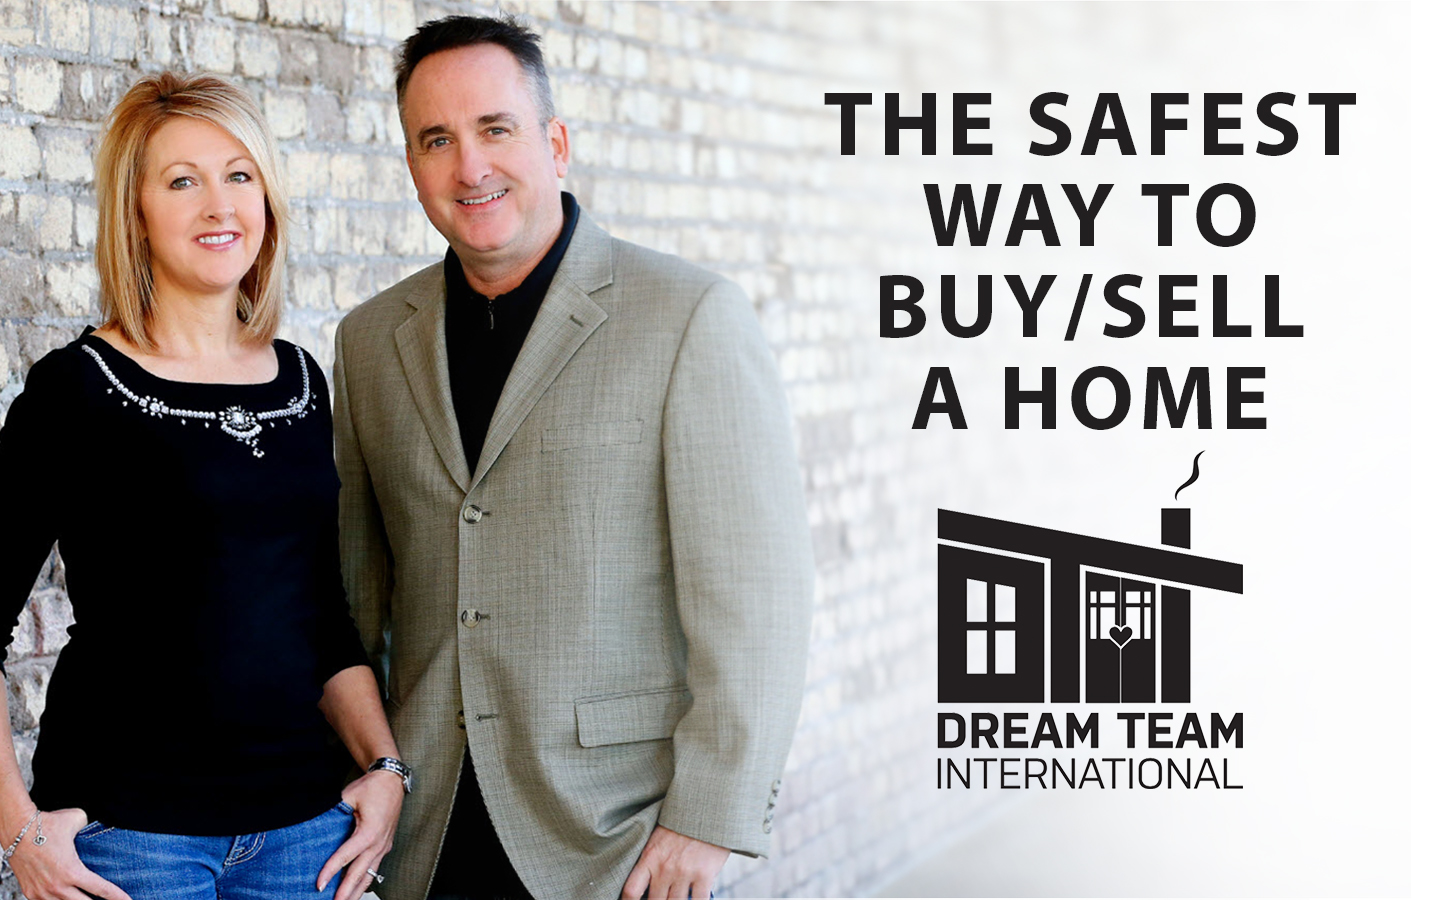 How to Protect Your Interests When Buying/Selling a Home